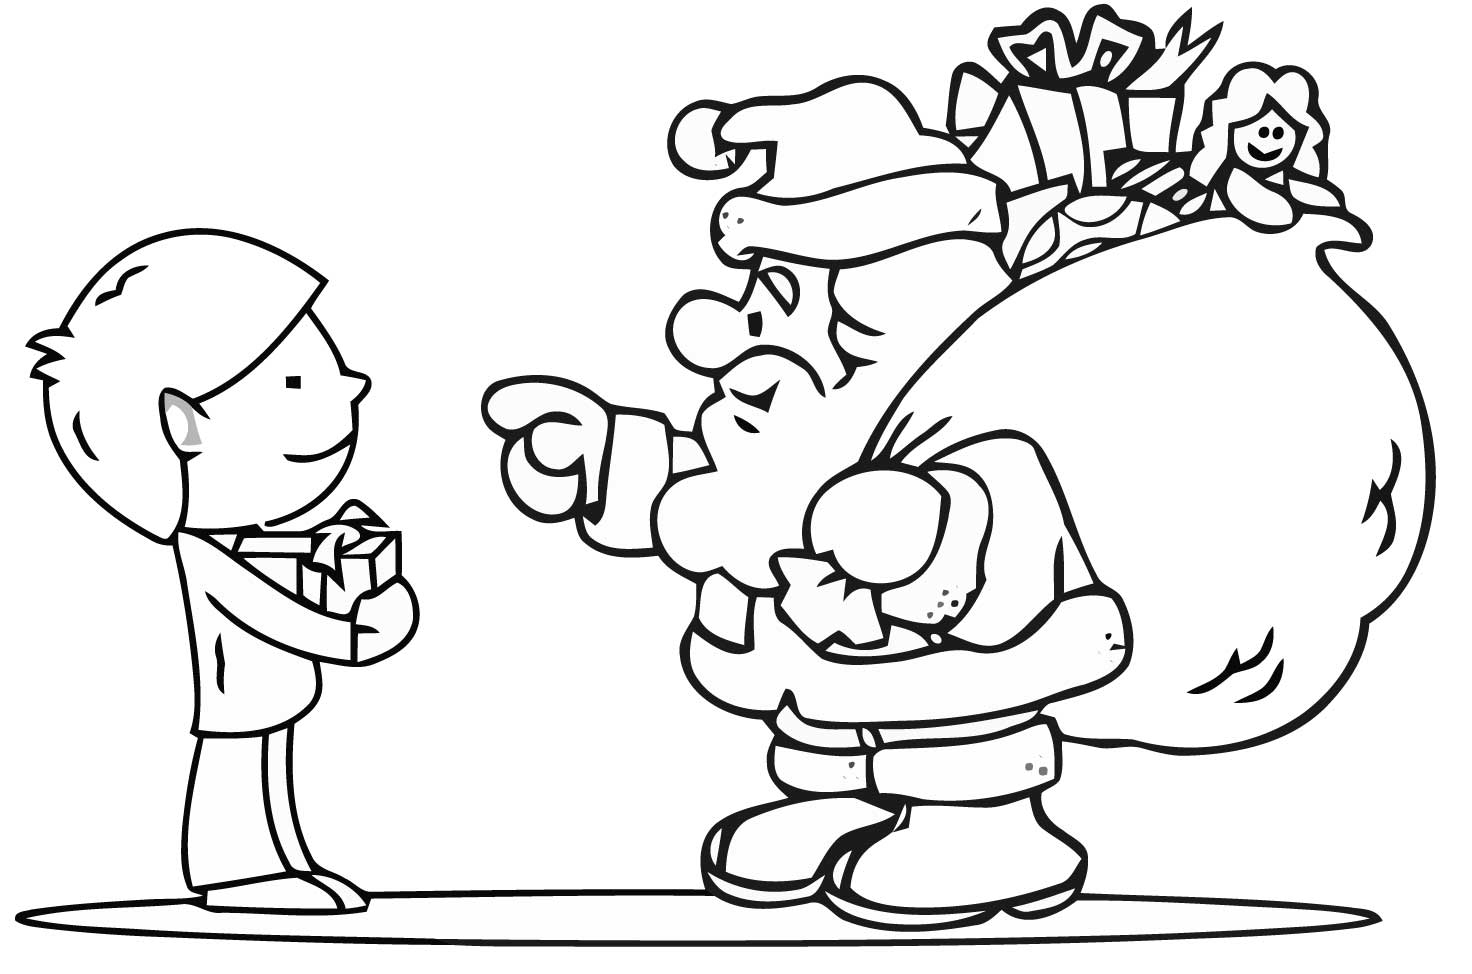 christmas coloring pages for preschoolers free christmas colouring pages for children kids online pages christmas preschoolers coloring for